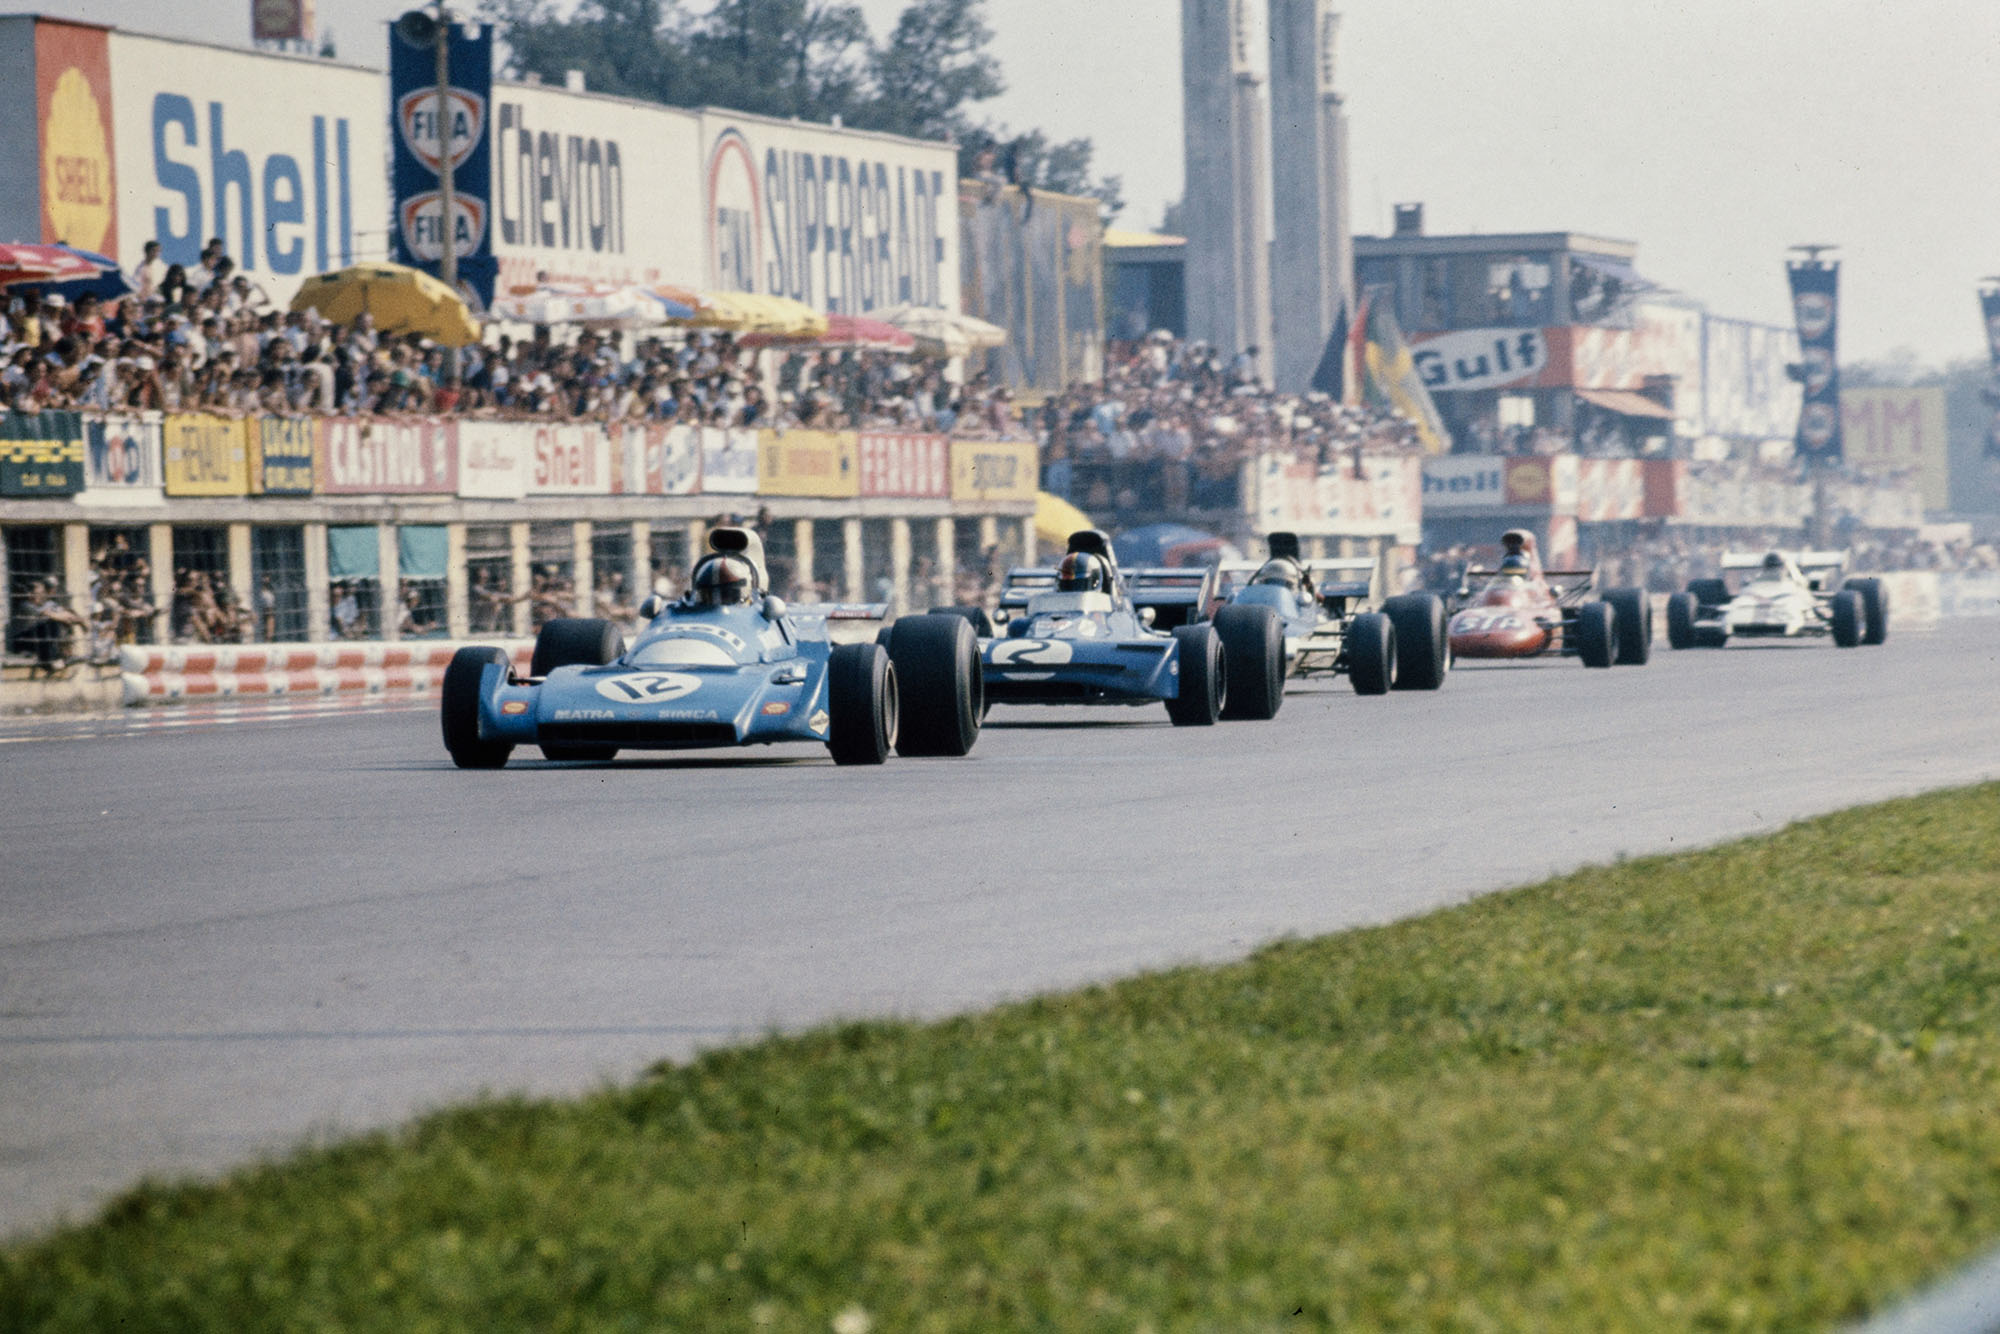 Chris Amon's Matra leads the field down the pit straight.